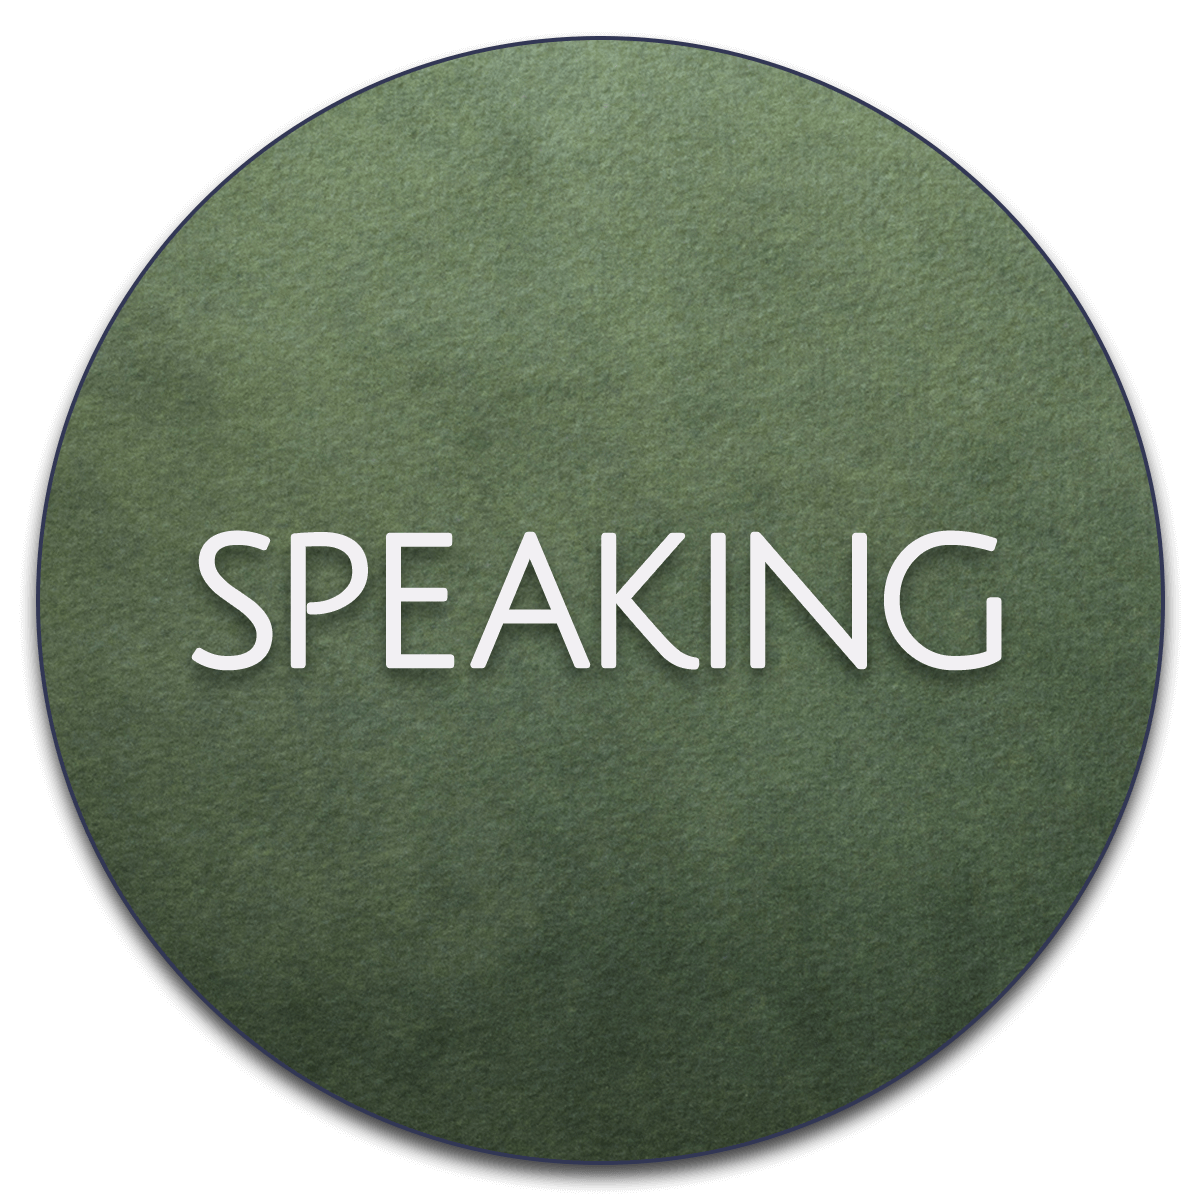 Slider Buttons_Speaking@2x